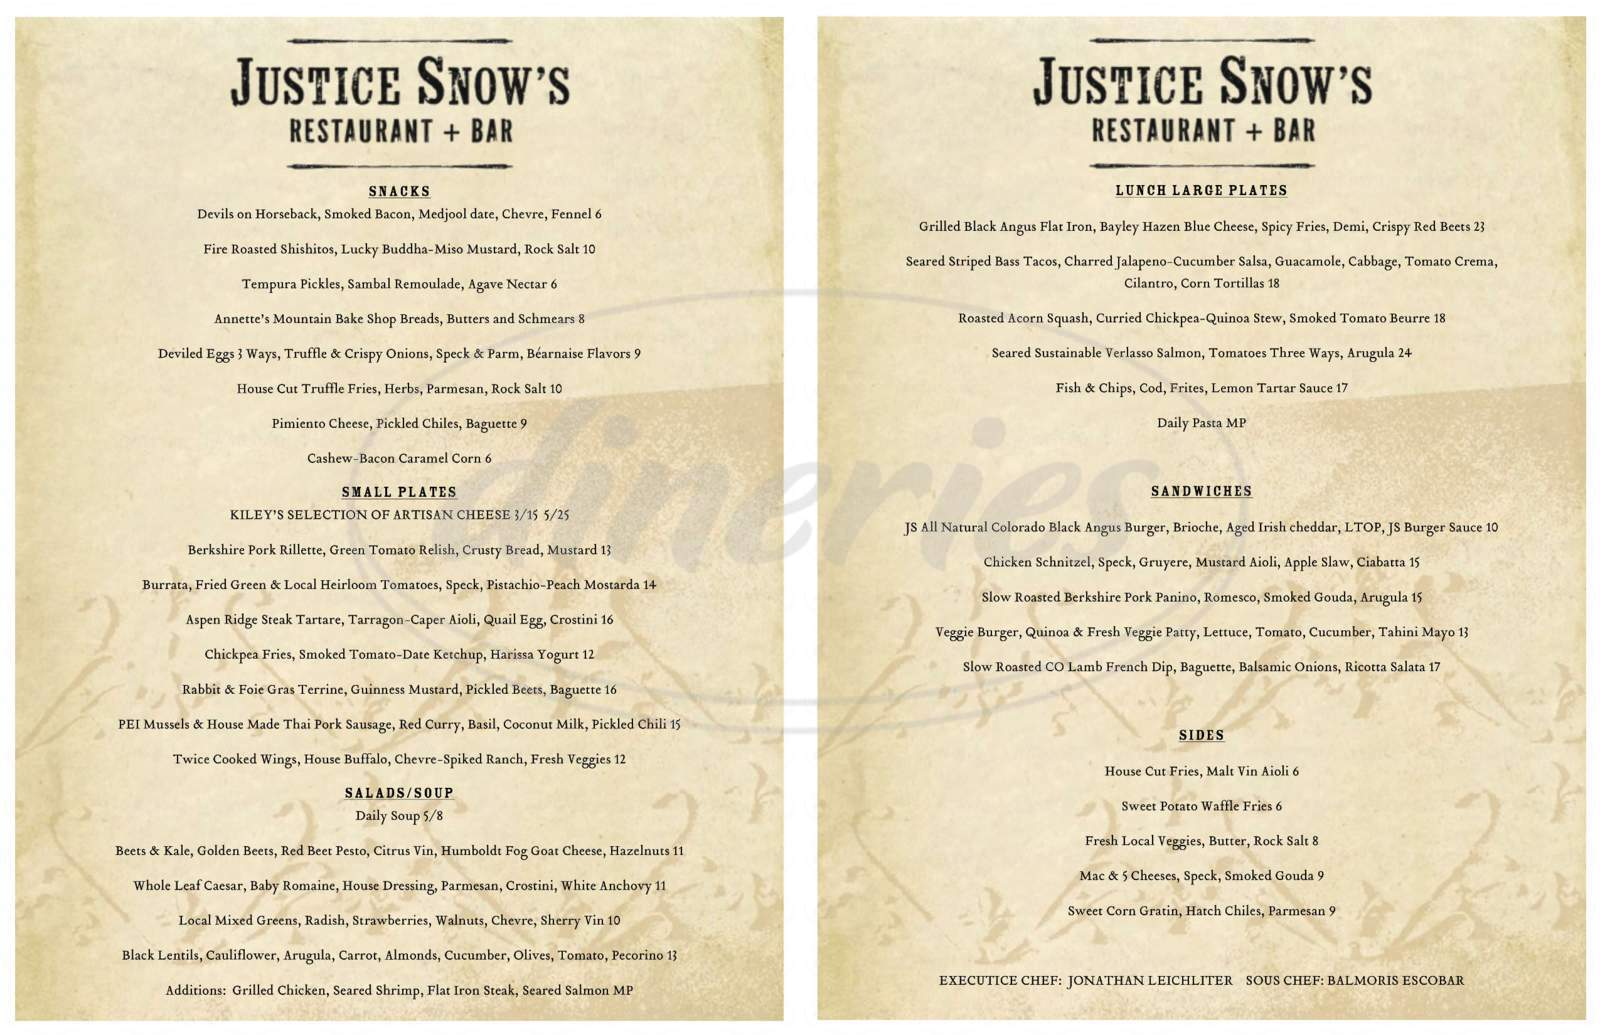 menu for Justice Snow's